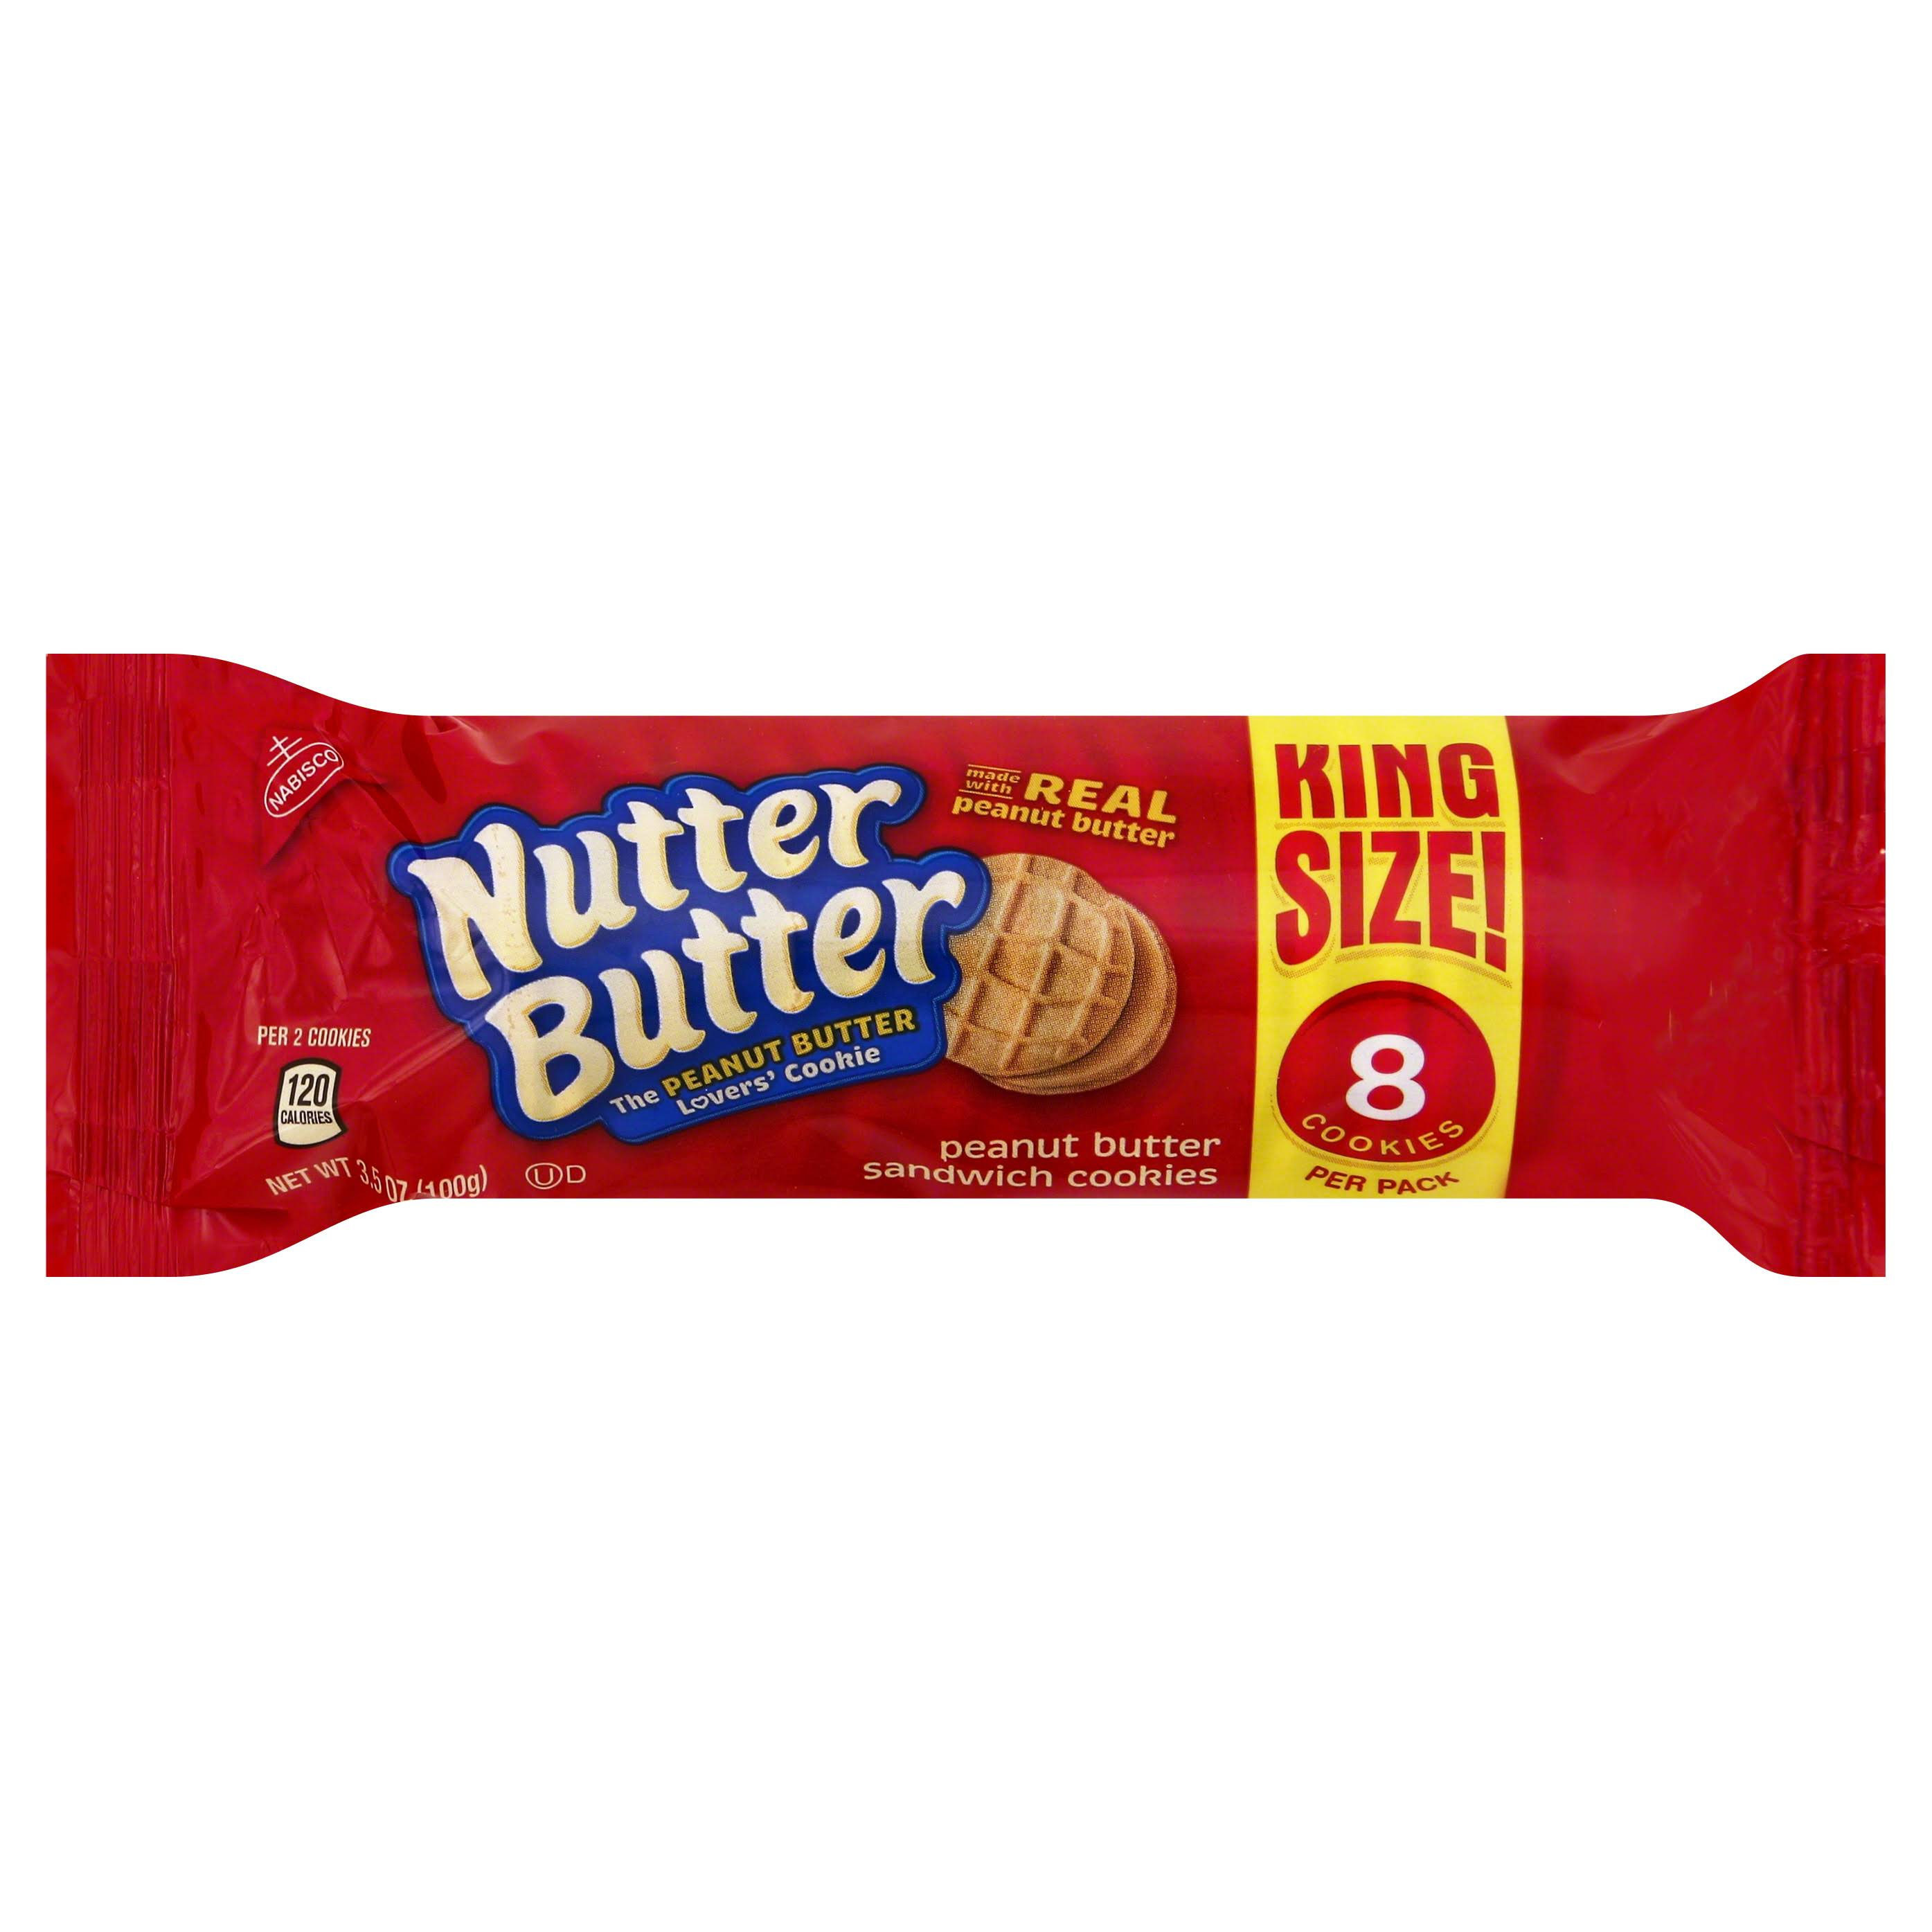 Nabisco Nutter Butter Sandwich Cookies - Peanut Butter, 3.5oz